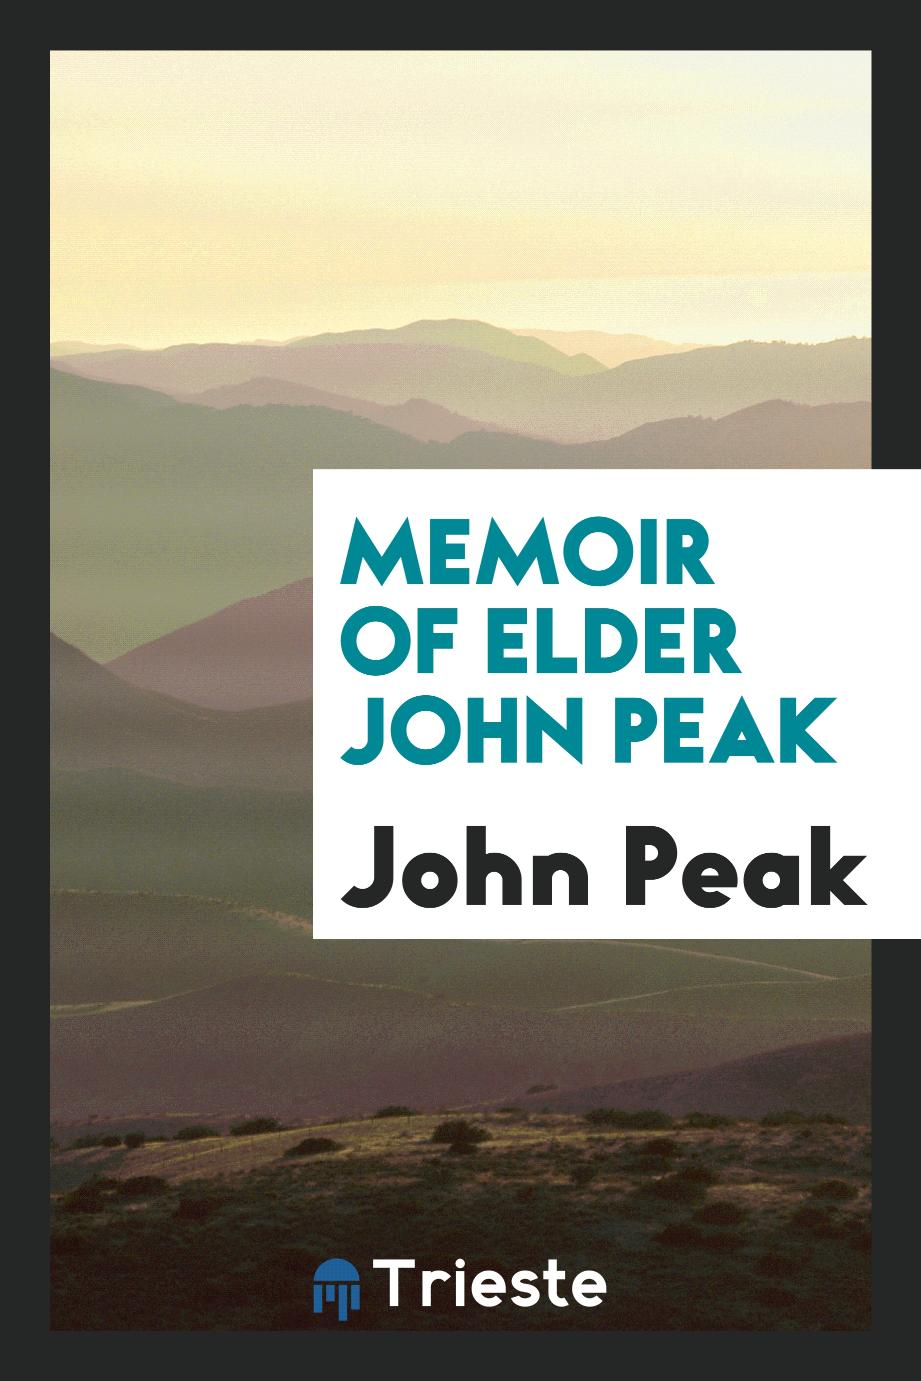 Memoir of Elder John Peak